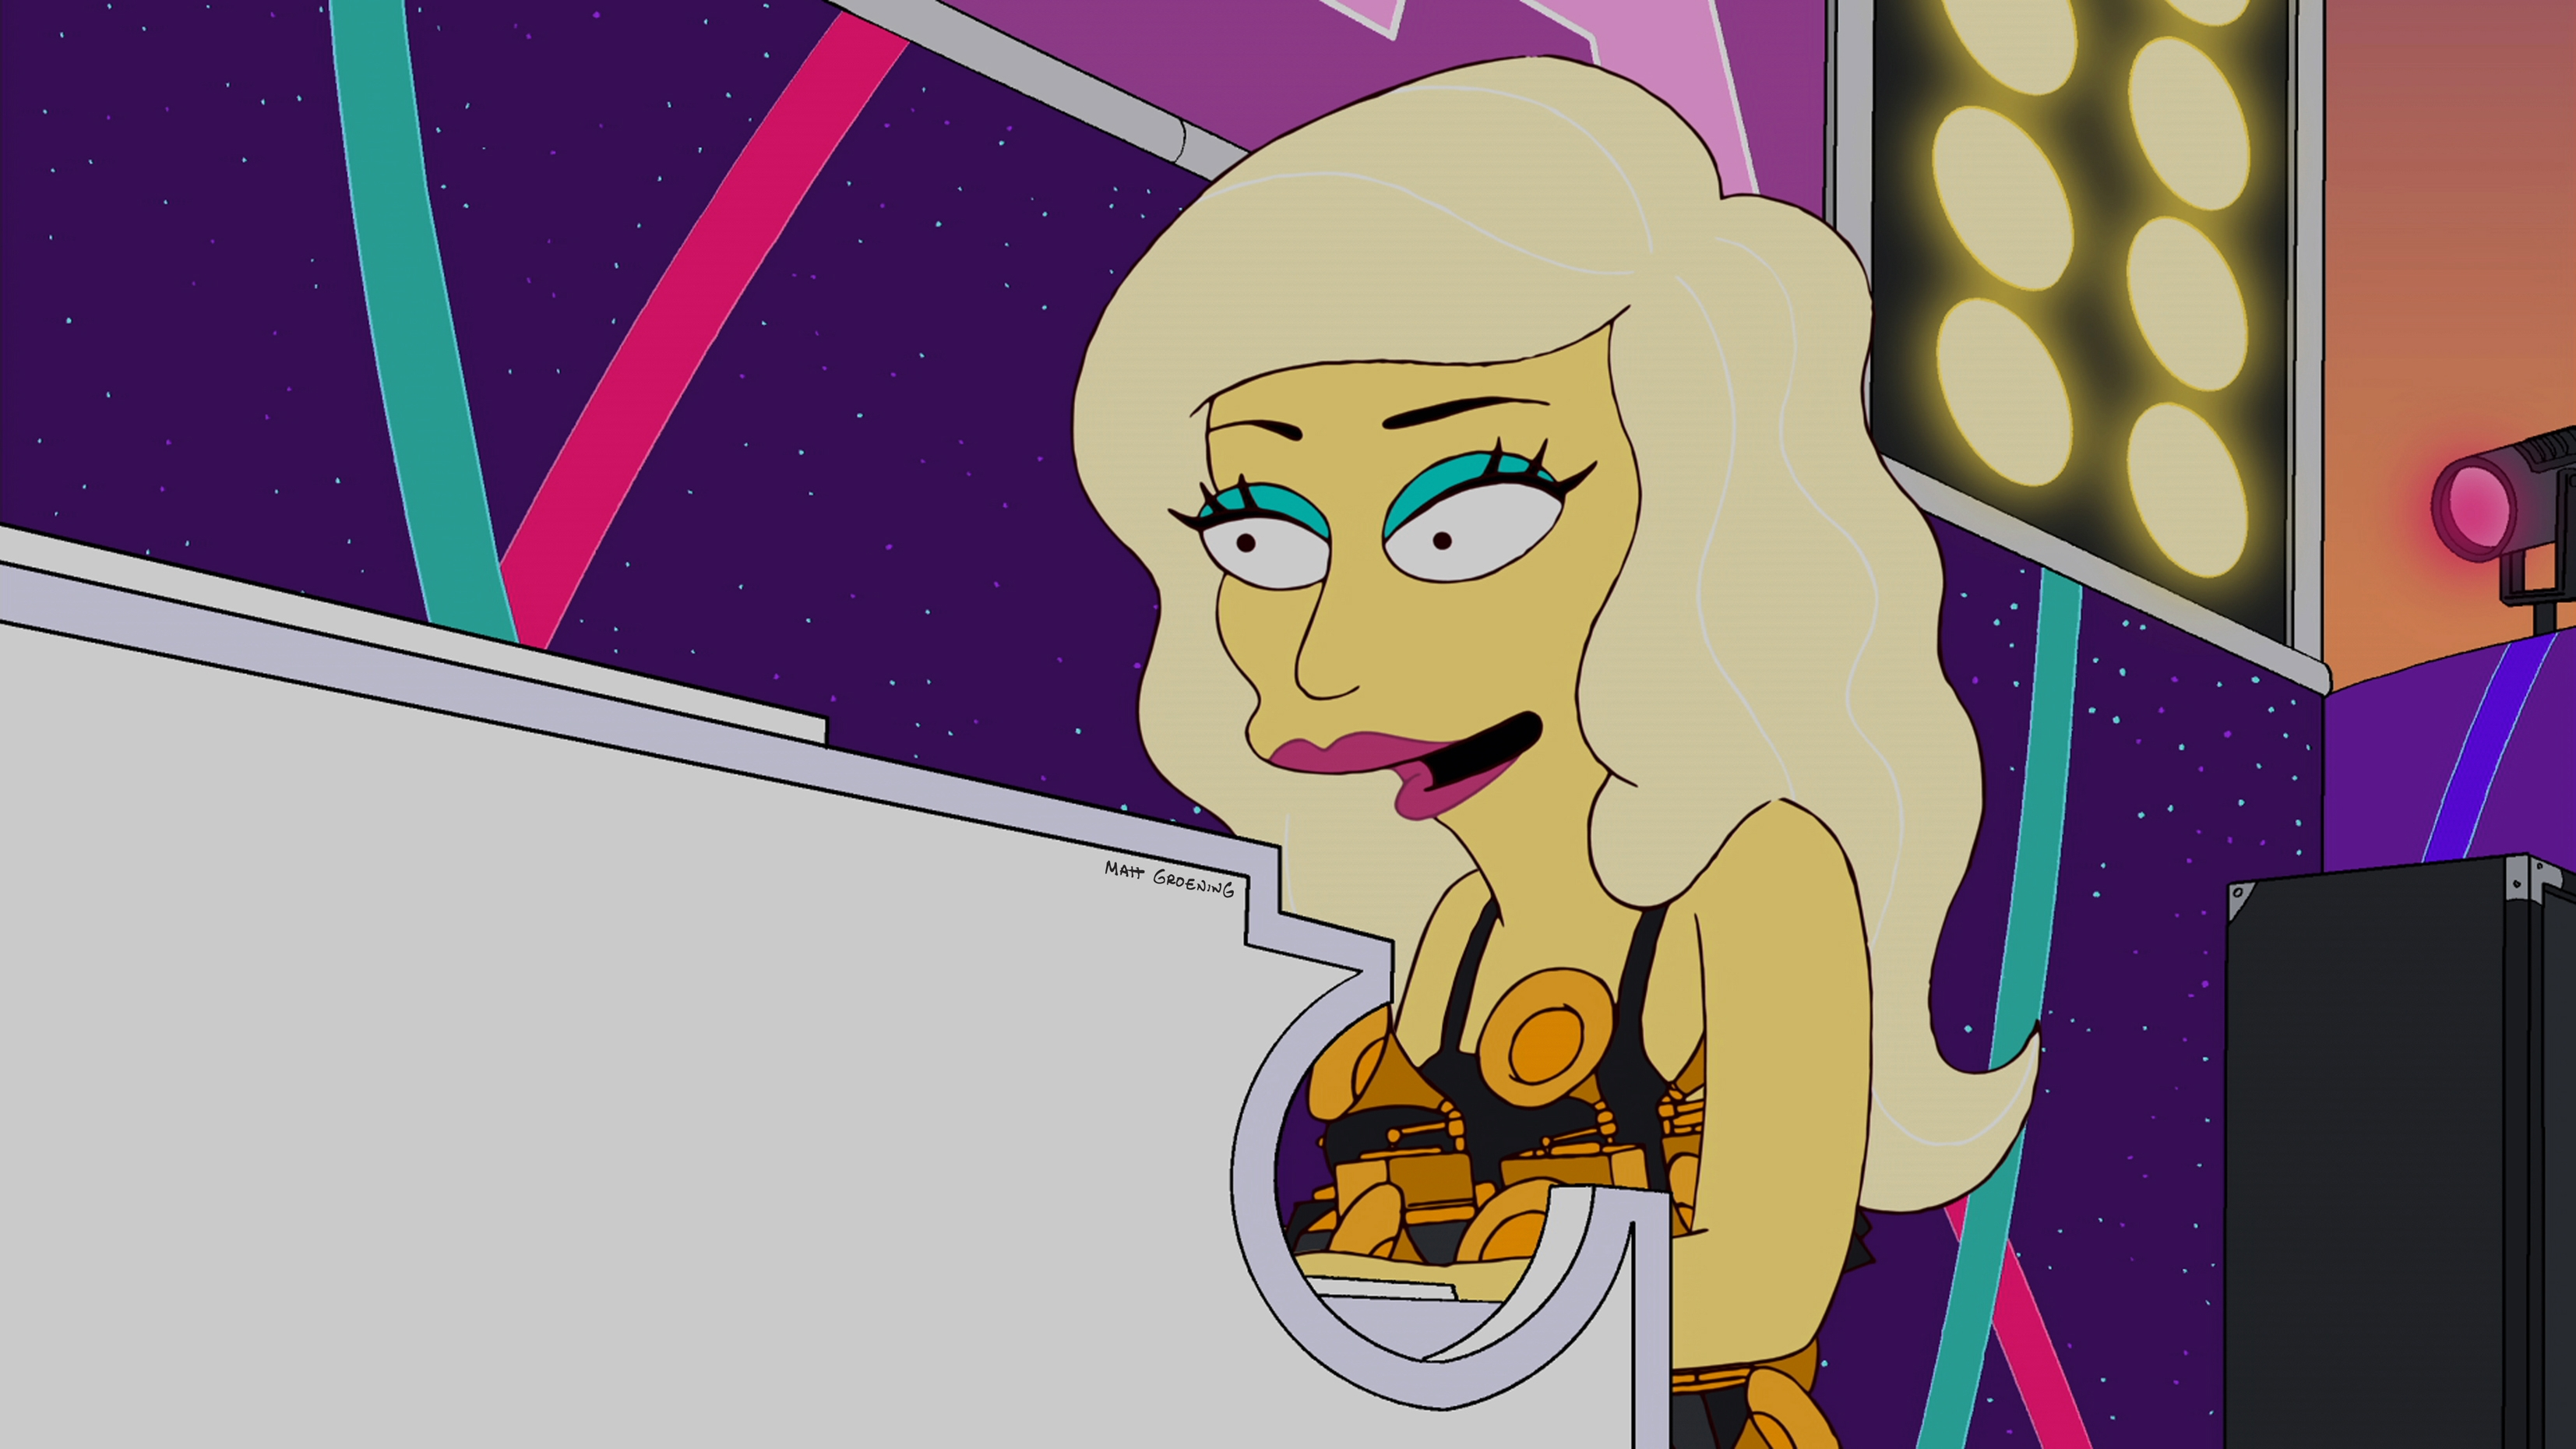 File:Gagasimpsons5.jpg